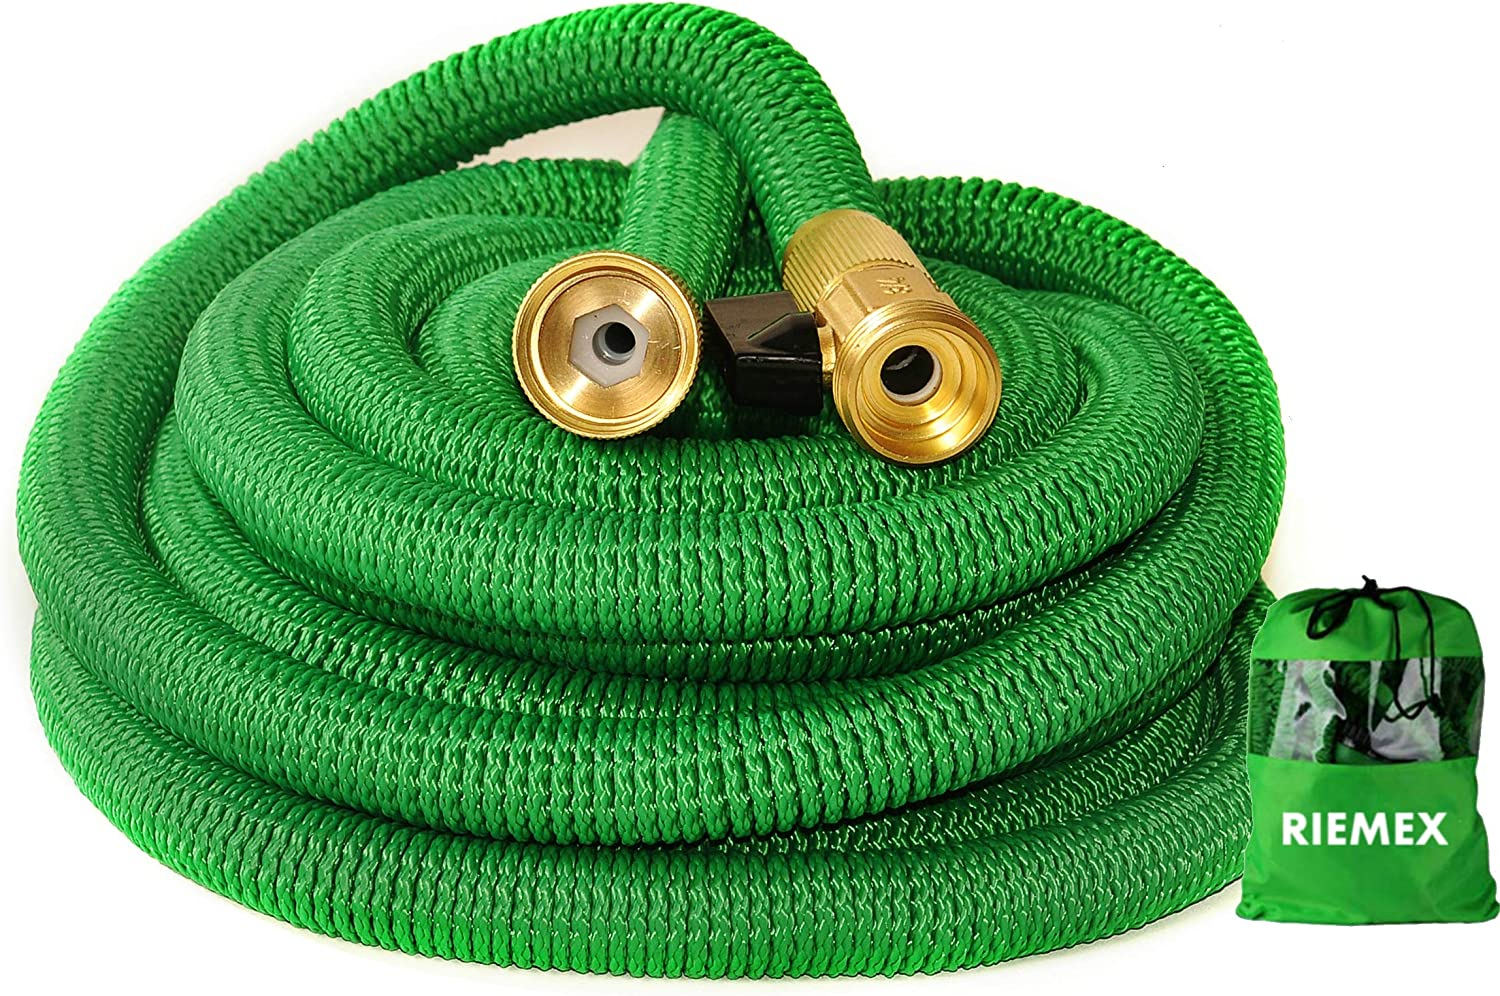 Riemex Expandable Garden Hose Green 25 FT [New 2020] Heavy Duty Water Hose - Triple Latex - Expanding Solid Brass Metal Fittings Connectors, Flexible Strongest 25FT Green